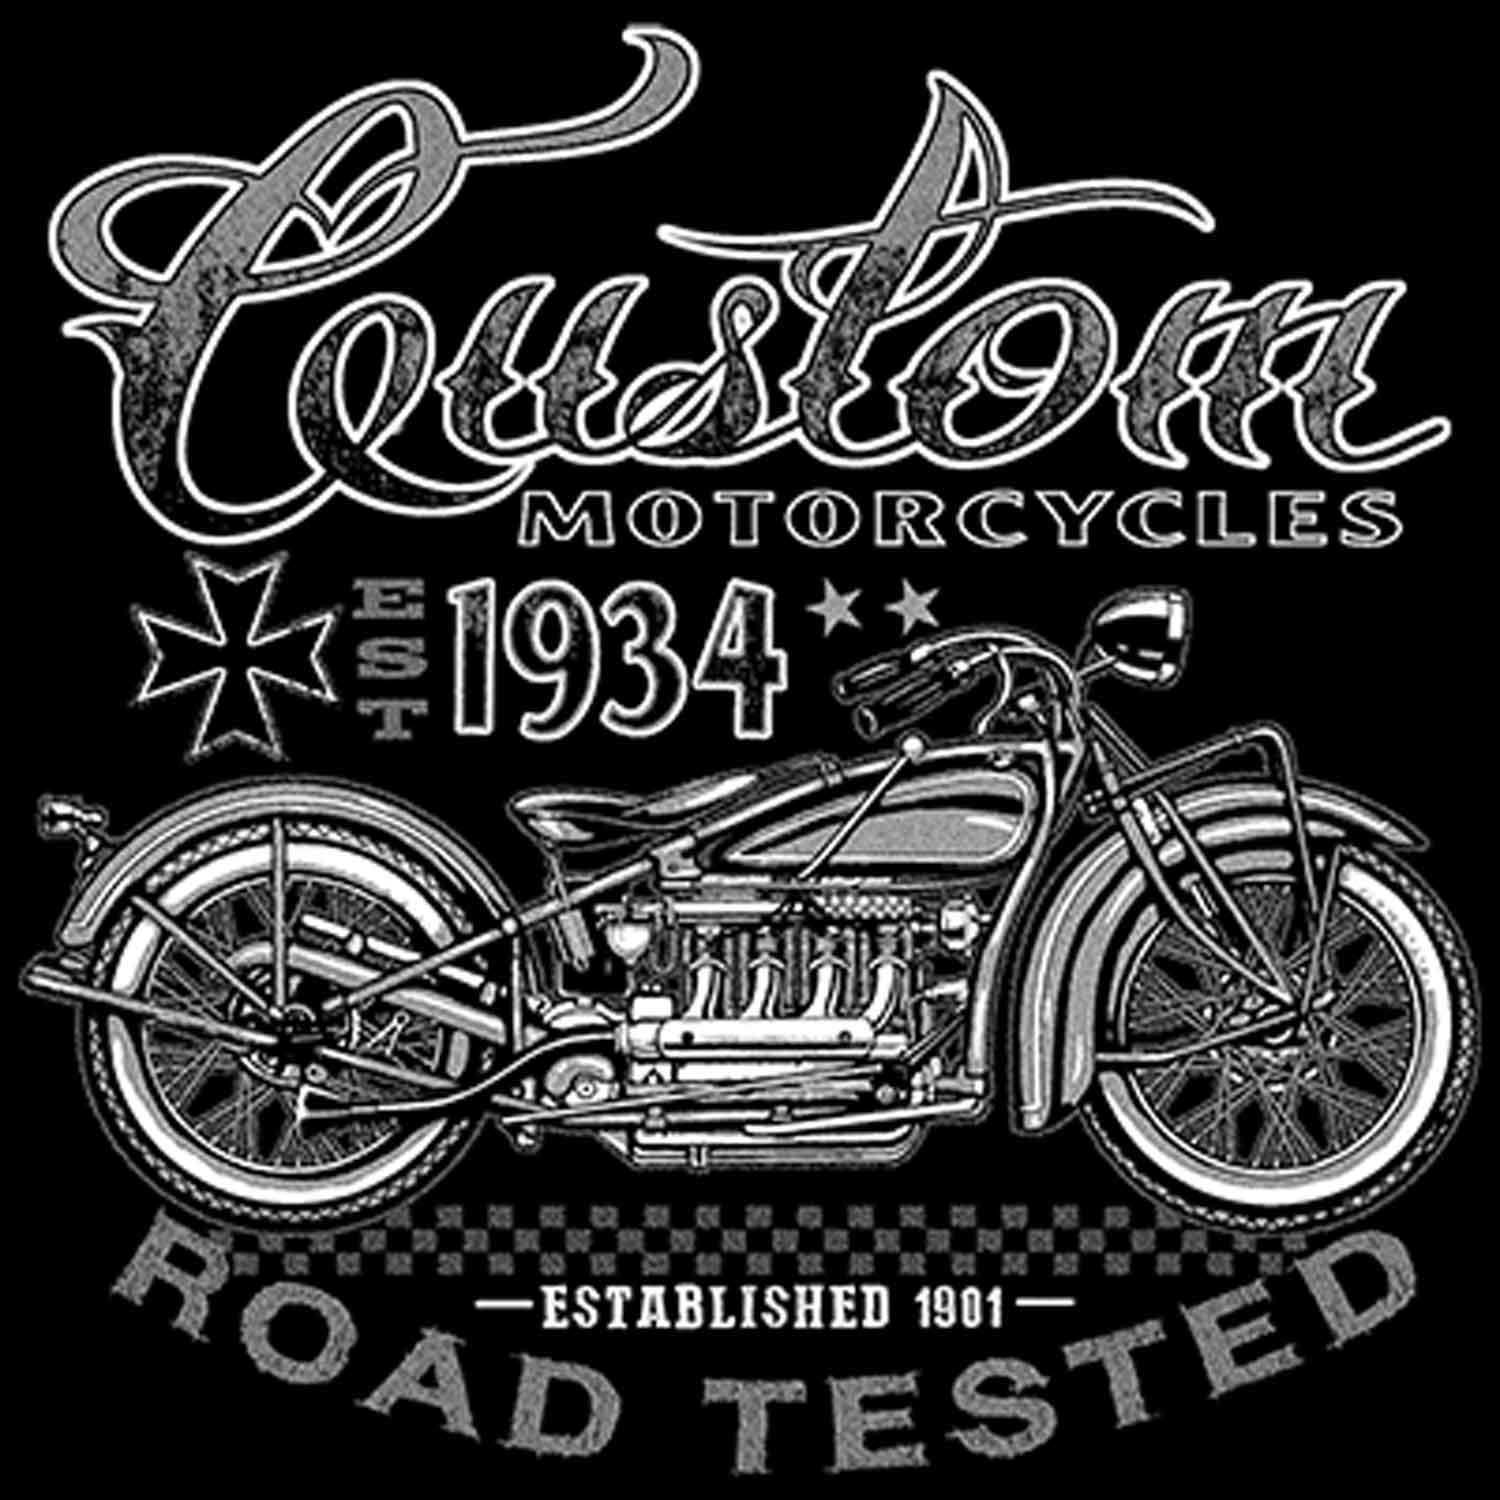 Custom Motorcycles Road Tested Printed T-Shirt-Black